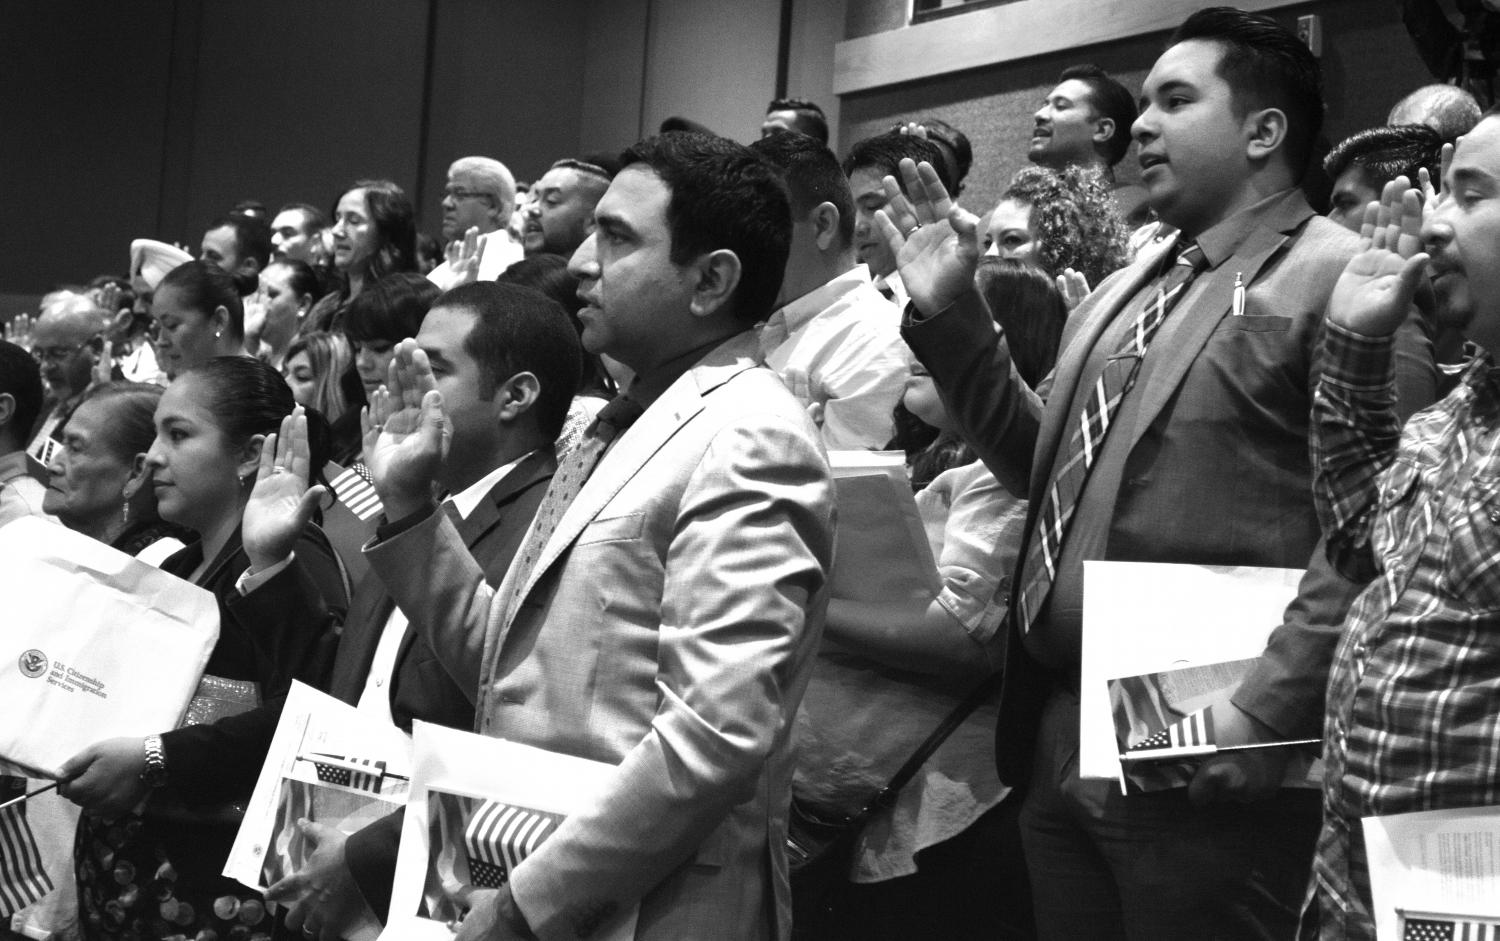 131 people raise their right hands as they swear the Oath of Allegiance and become naturalized citizens at the library.